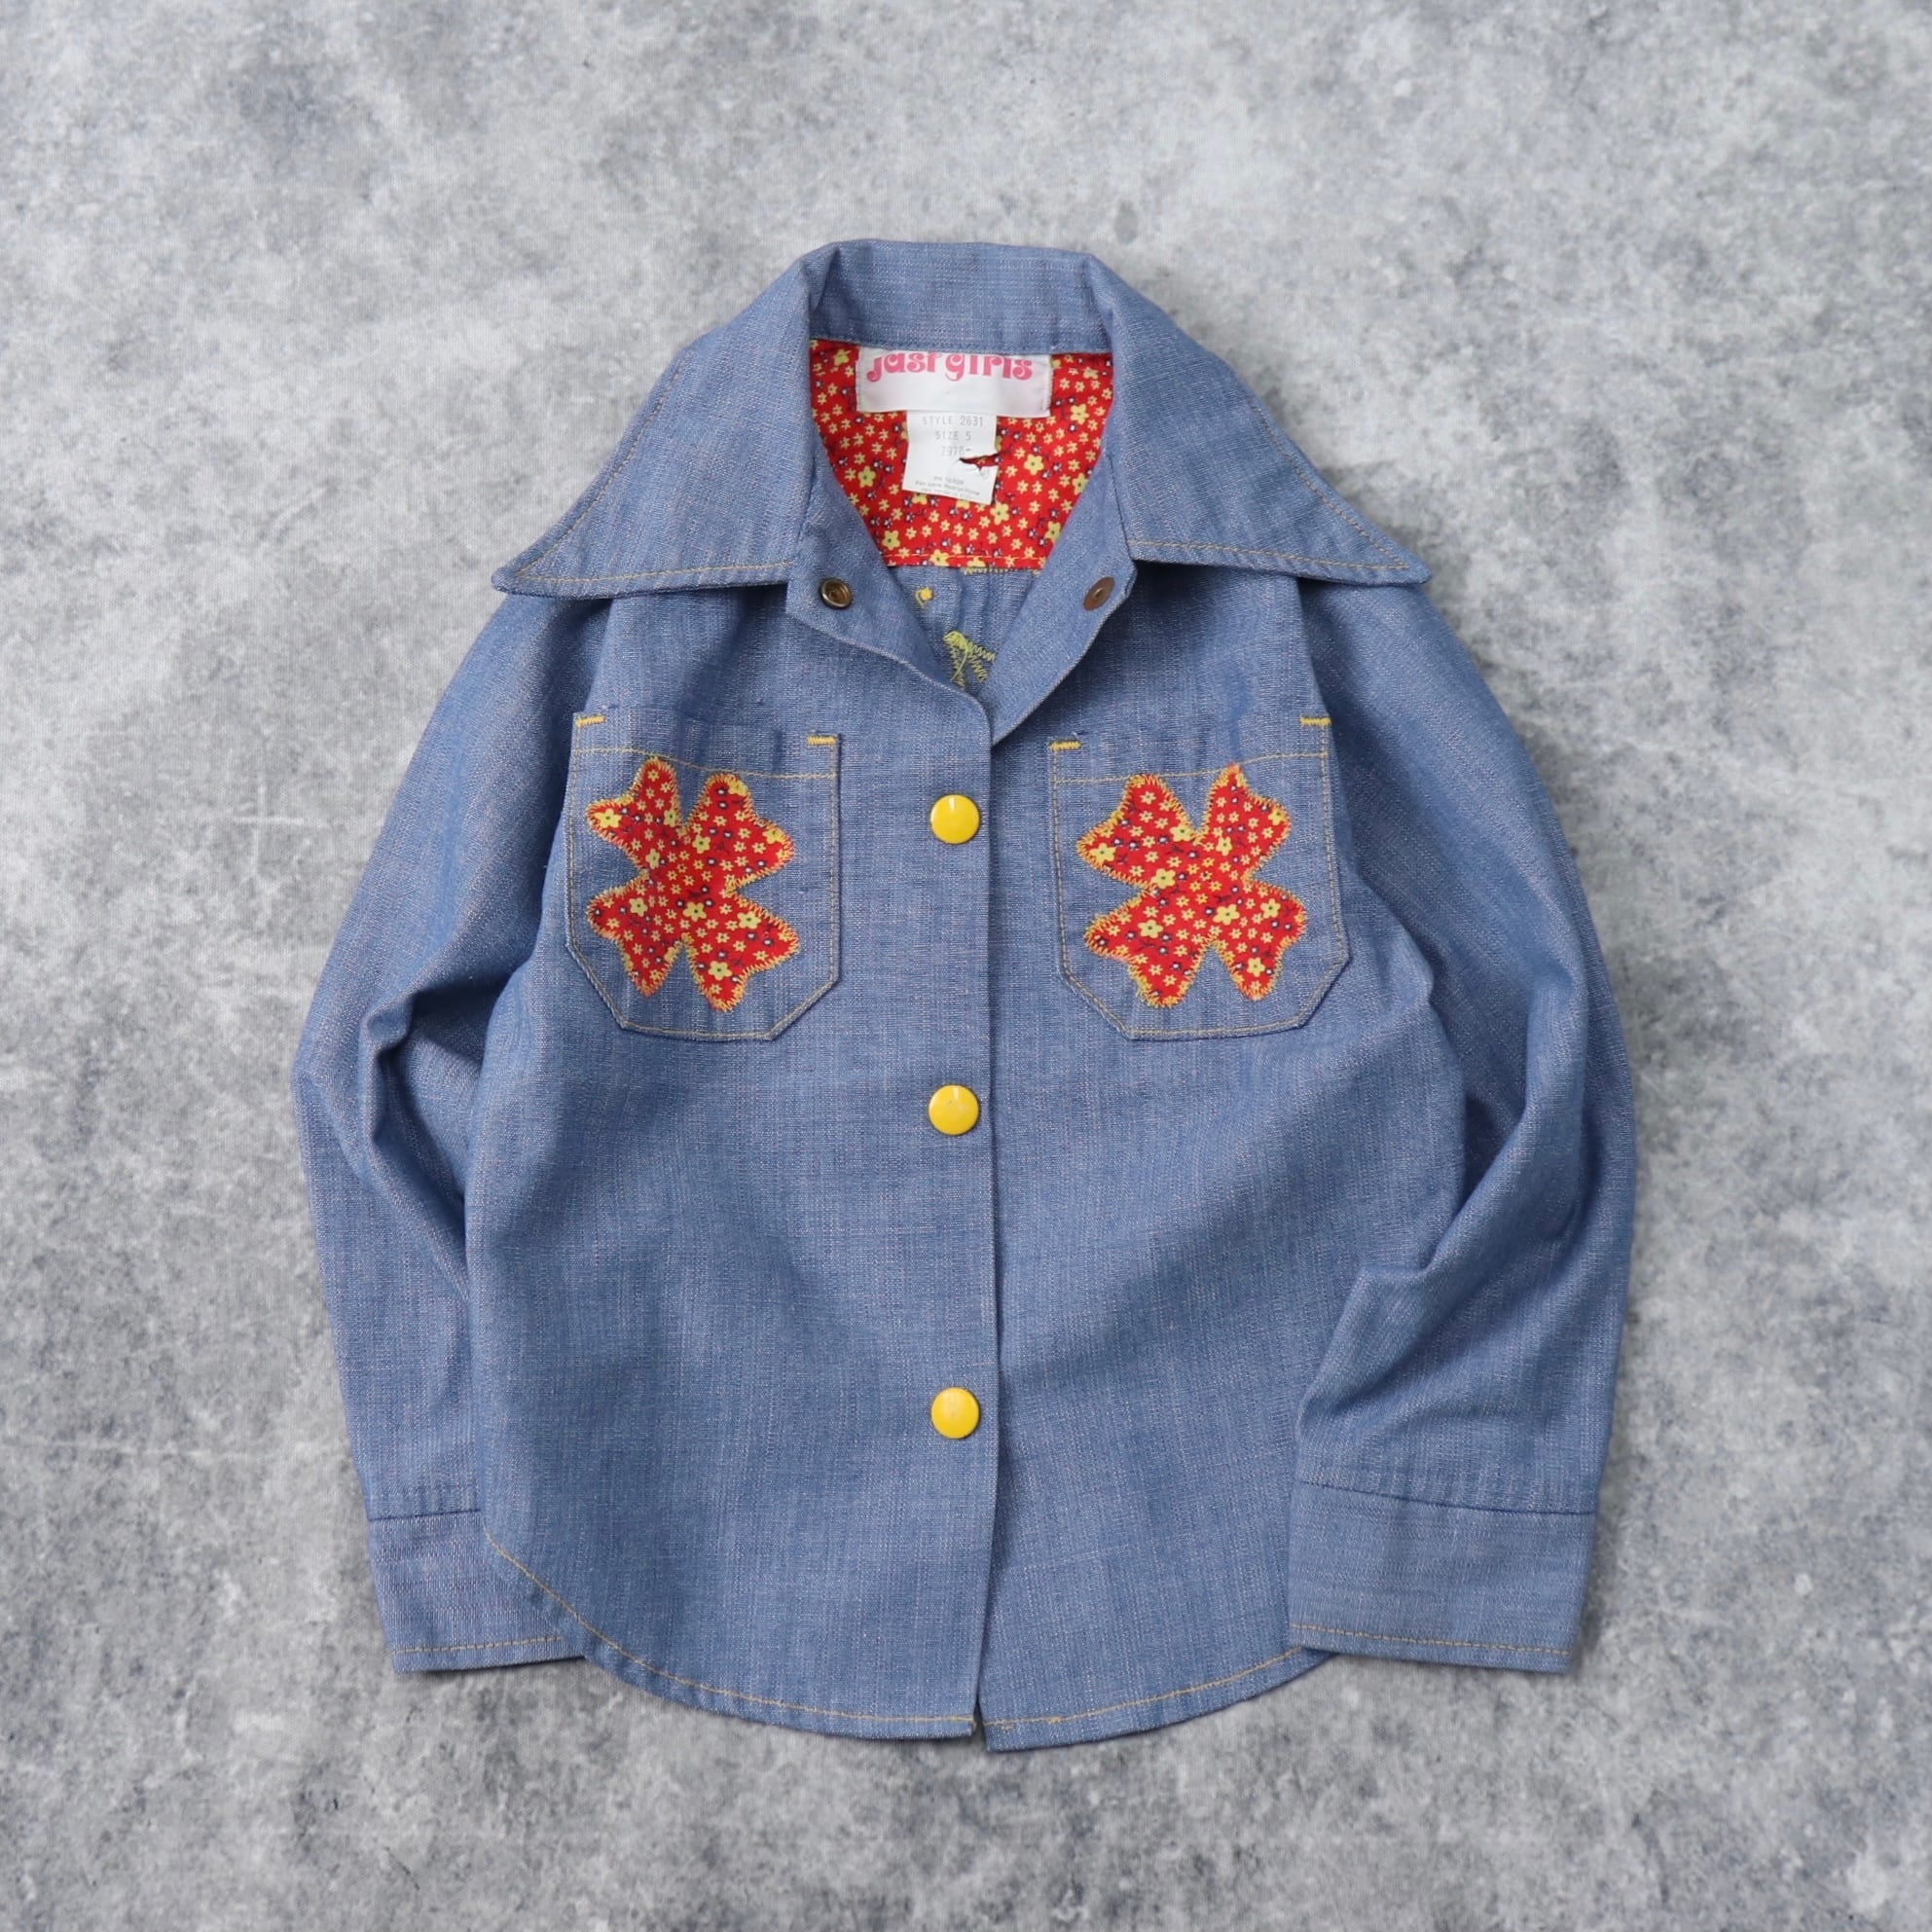 【KIDS】1970s  Vintage  Embroidery  Chambray  Shirts  A963